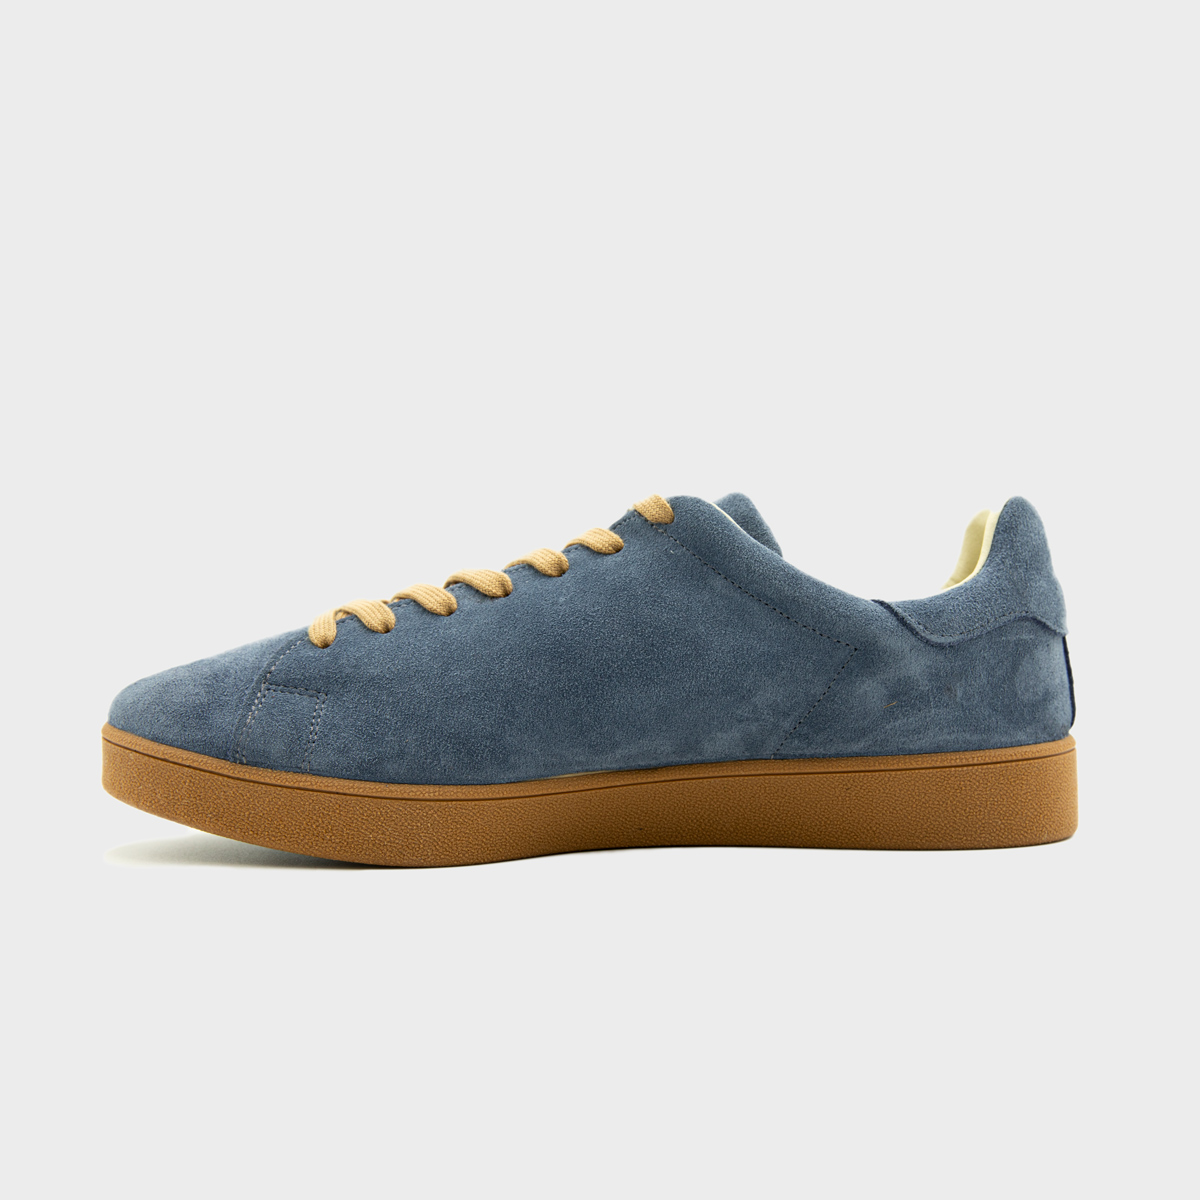 SAVIA BLUEMOON UNISEX'S